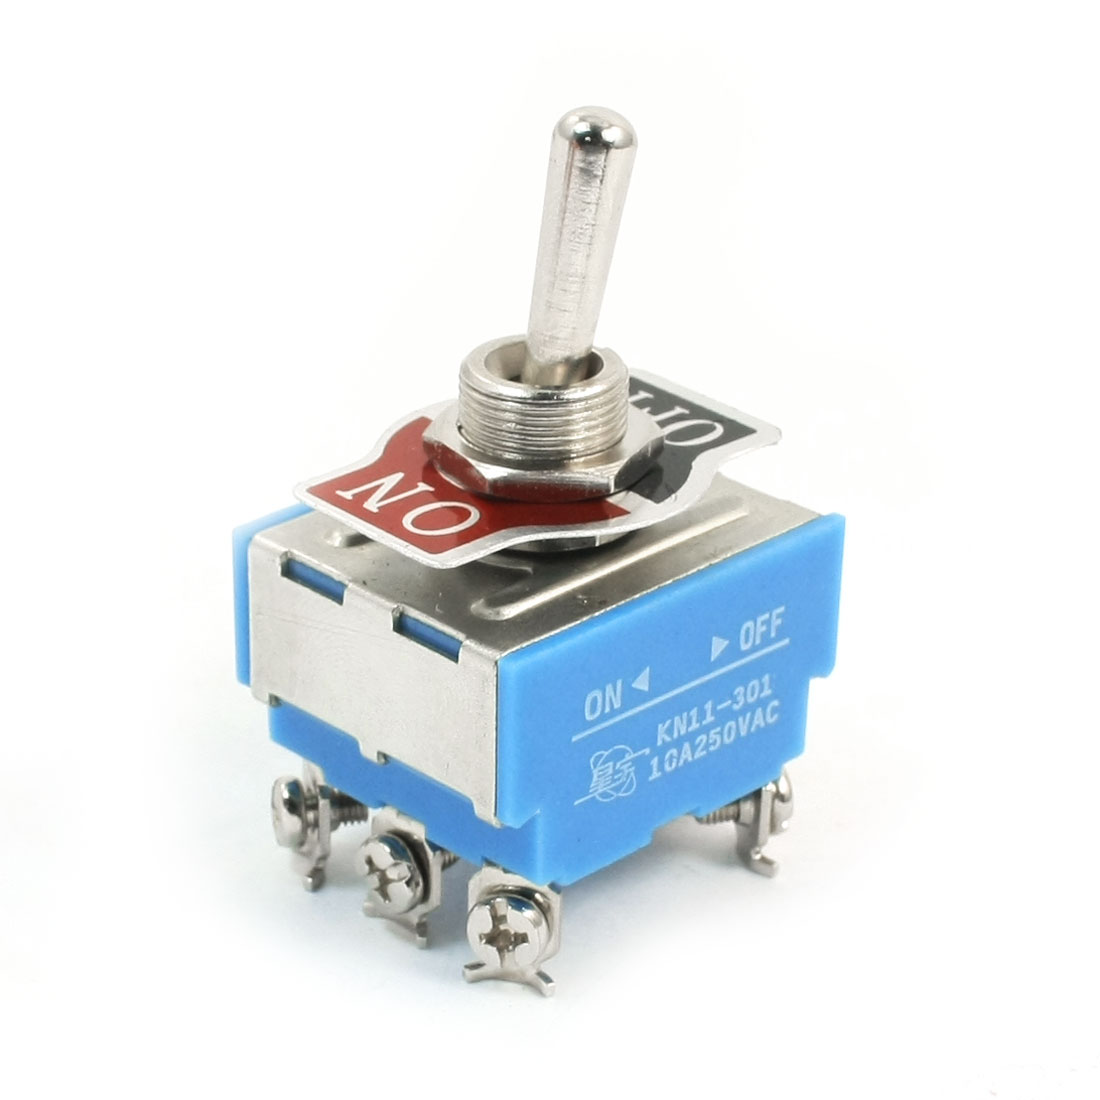 KN11-301 DPDT 2 Positions ON/OFF Latching Toggle Switch AC250V 10A